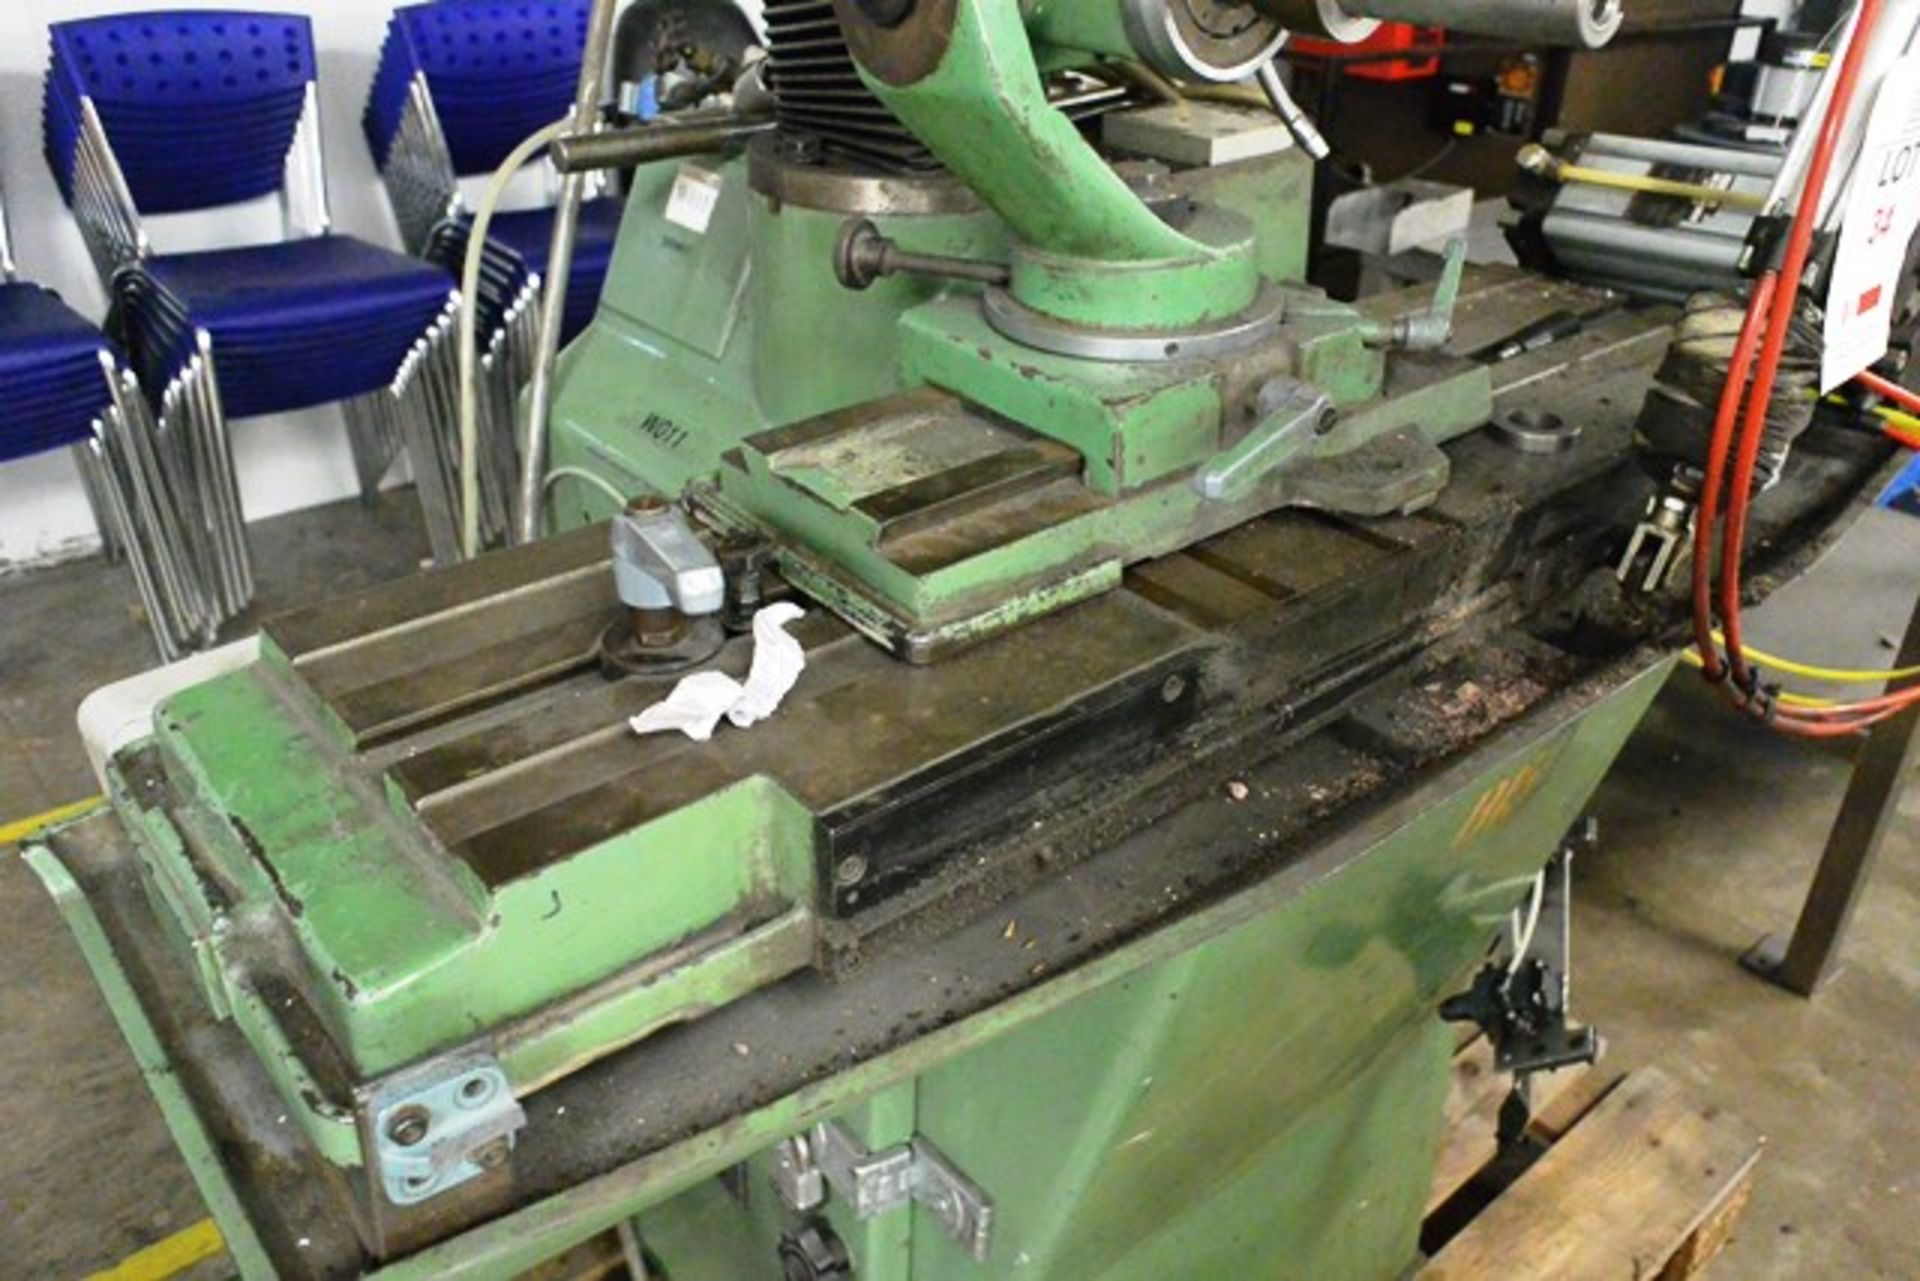 Zuber horizontal surface grinder, machine no. 06013, approx table dimension 900 x 270mm - Image 3 of 7